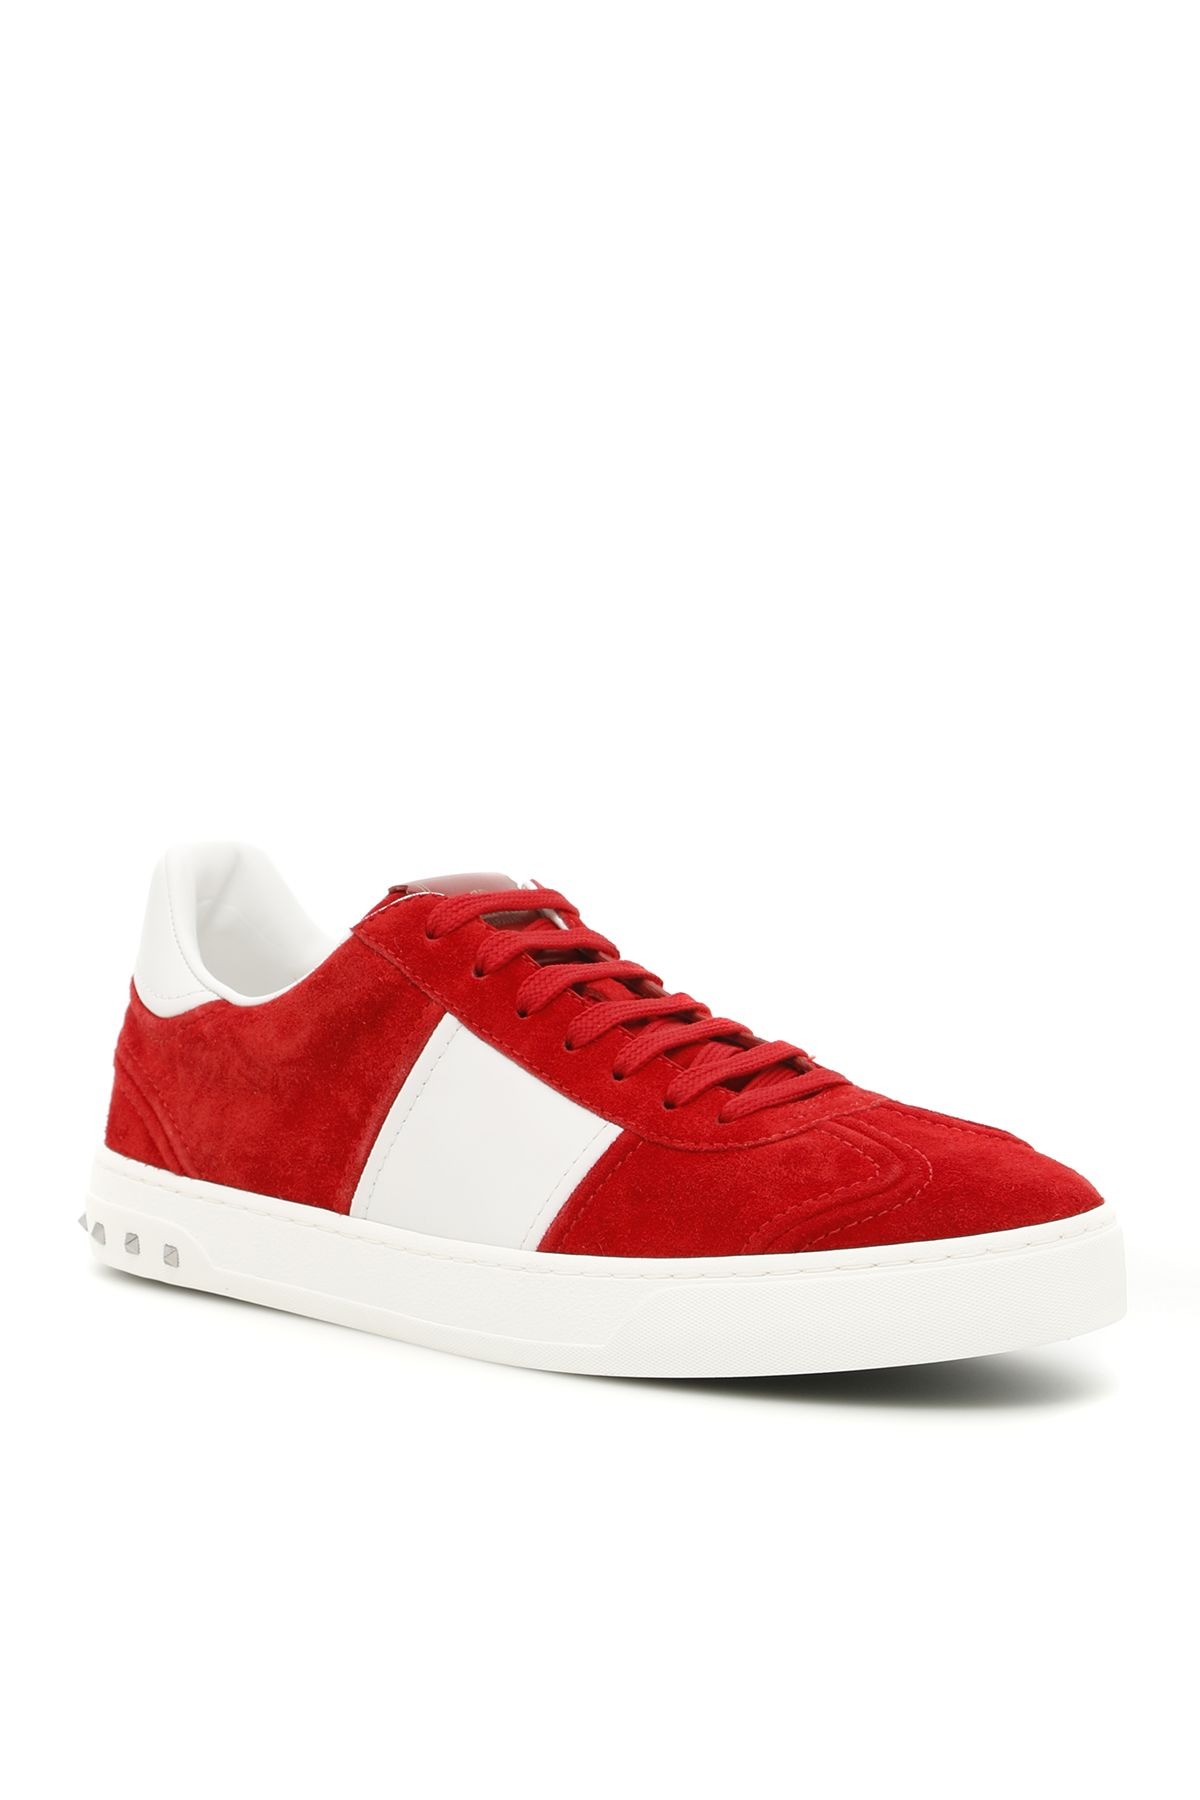 New Valentino Flycrew Sneakers Bianco Rosso